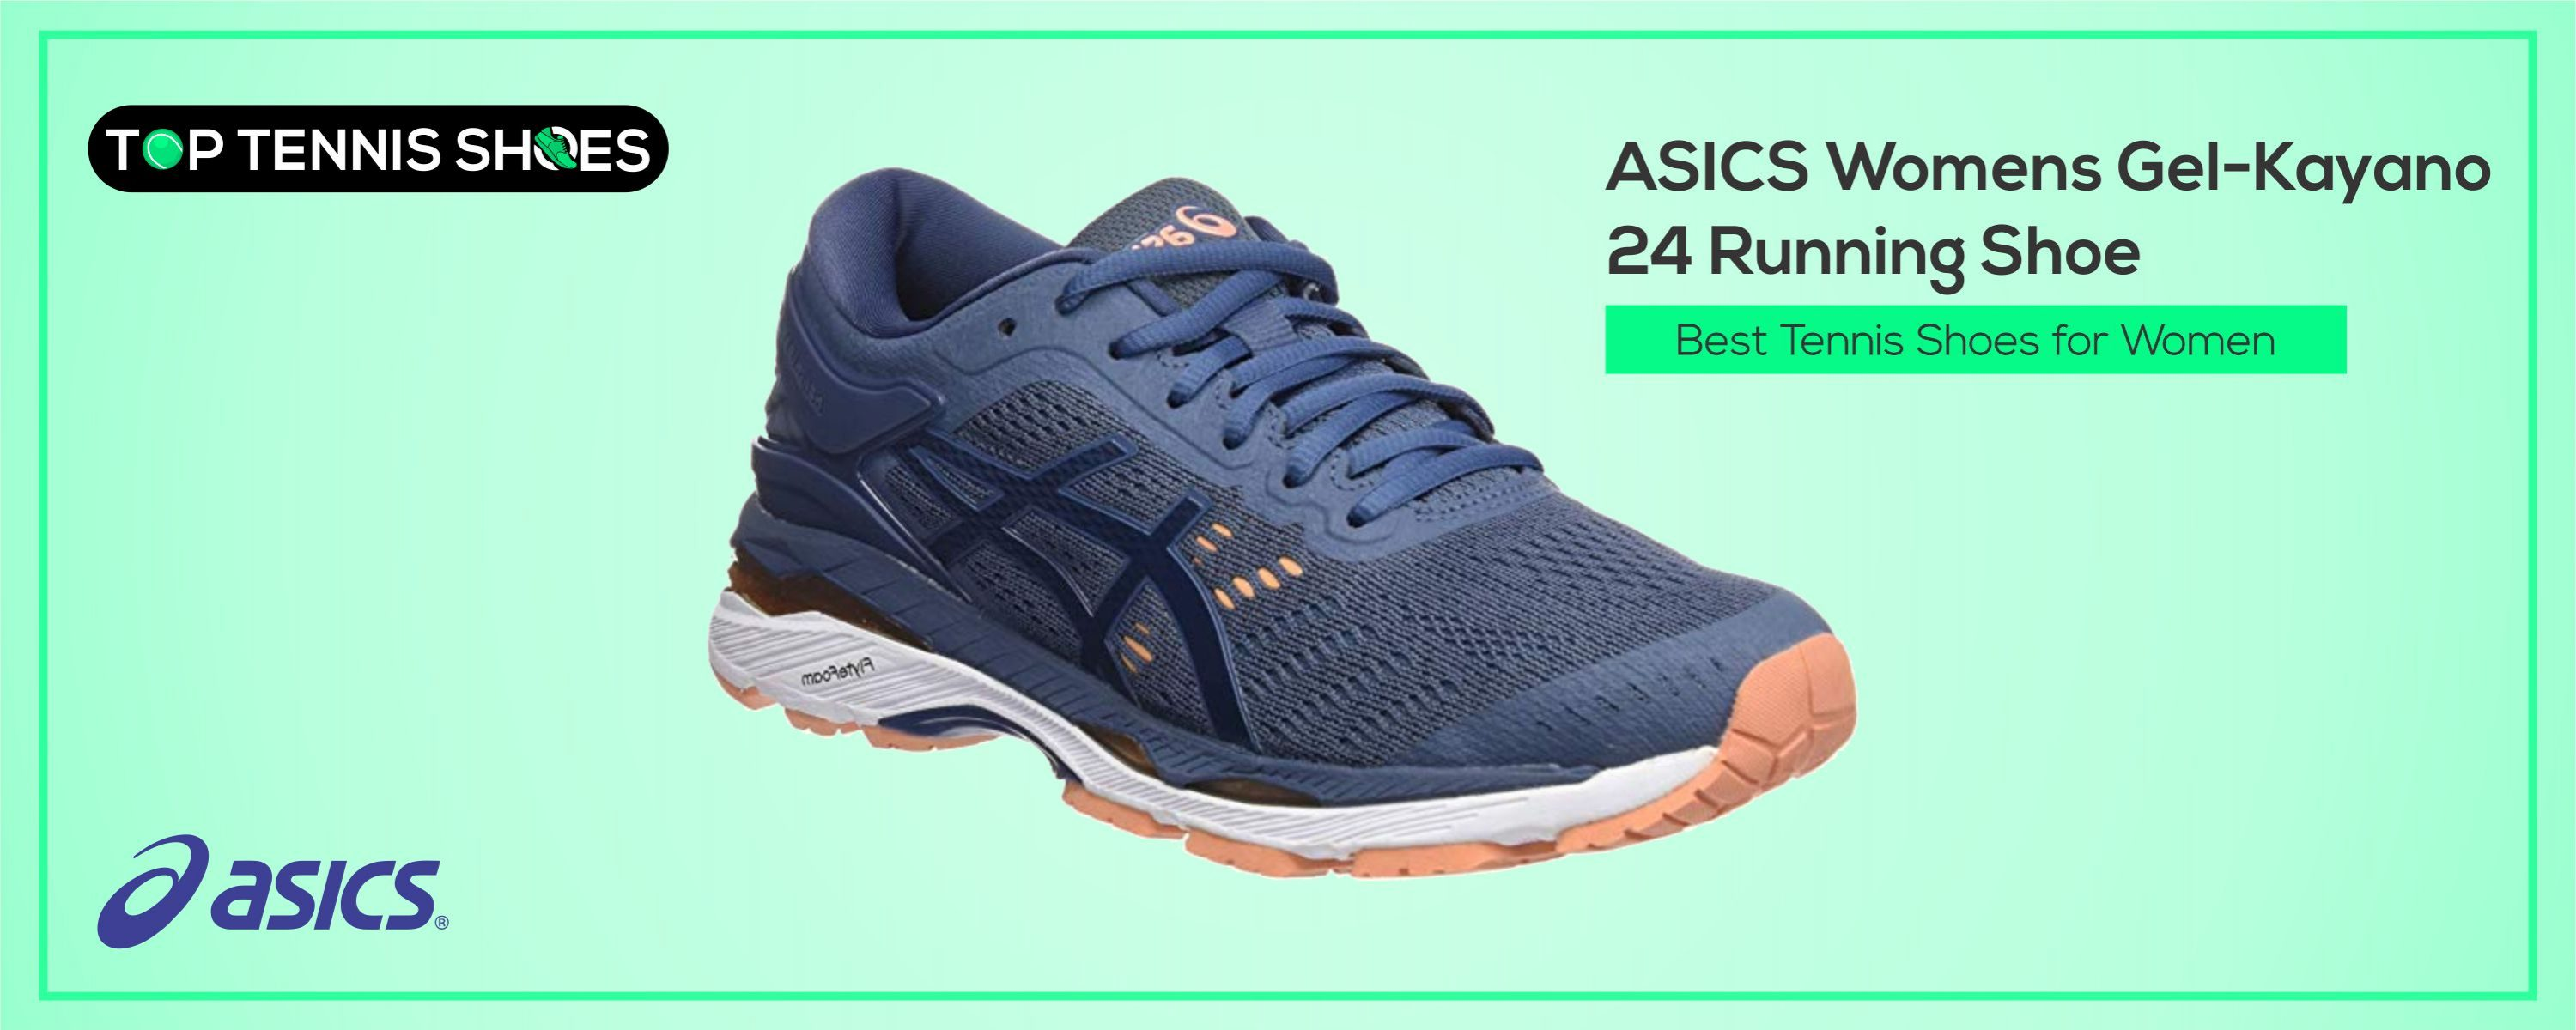 Tennis Shoe for ankle support best